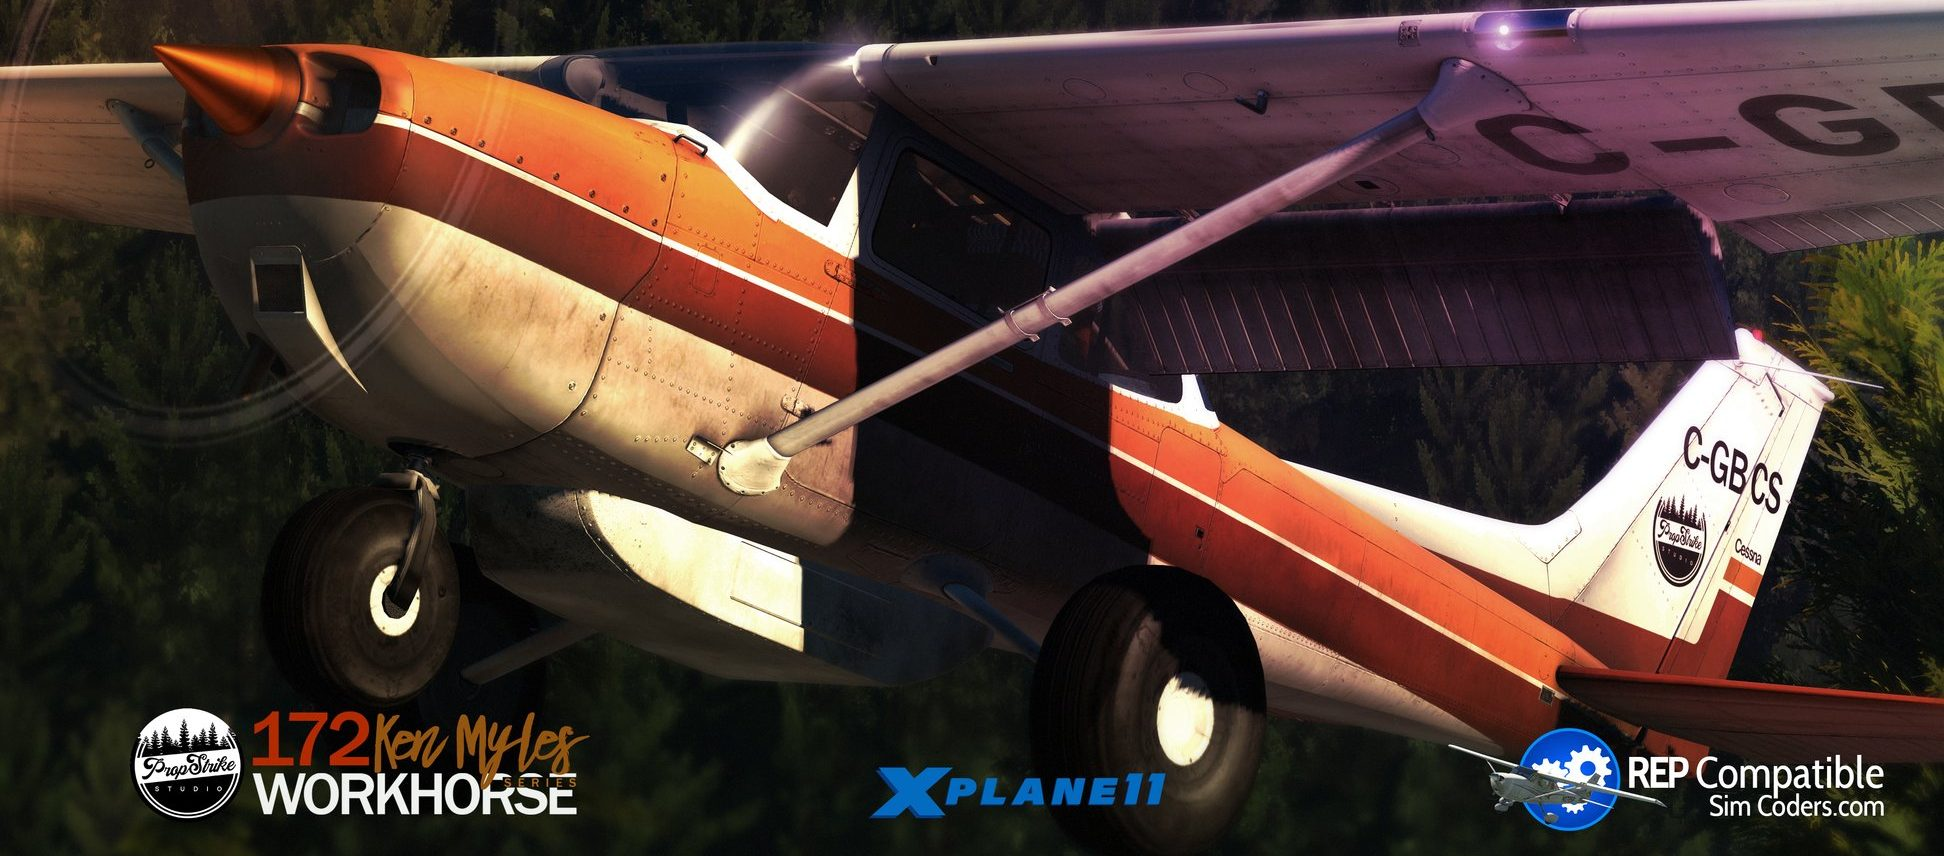 Das Cessna 172 Bush Kit von Prop-Strike Studio